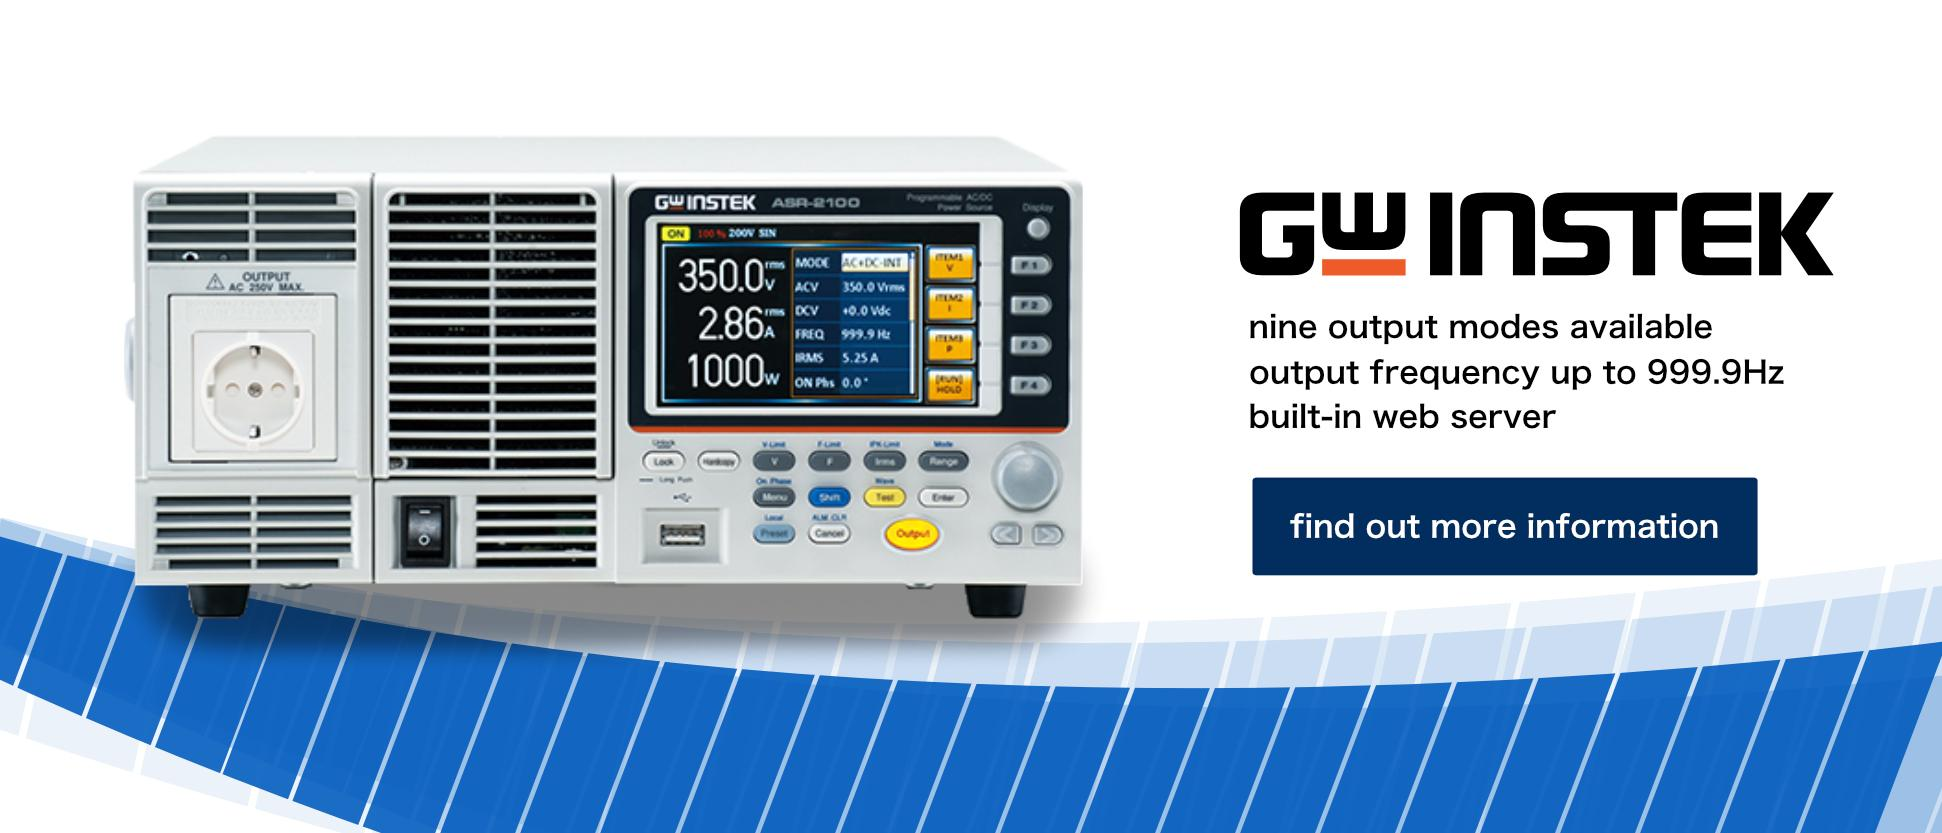 GW Instek ASR-2100 Series Product Introduction